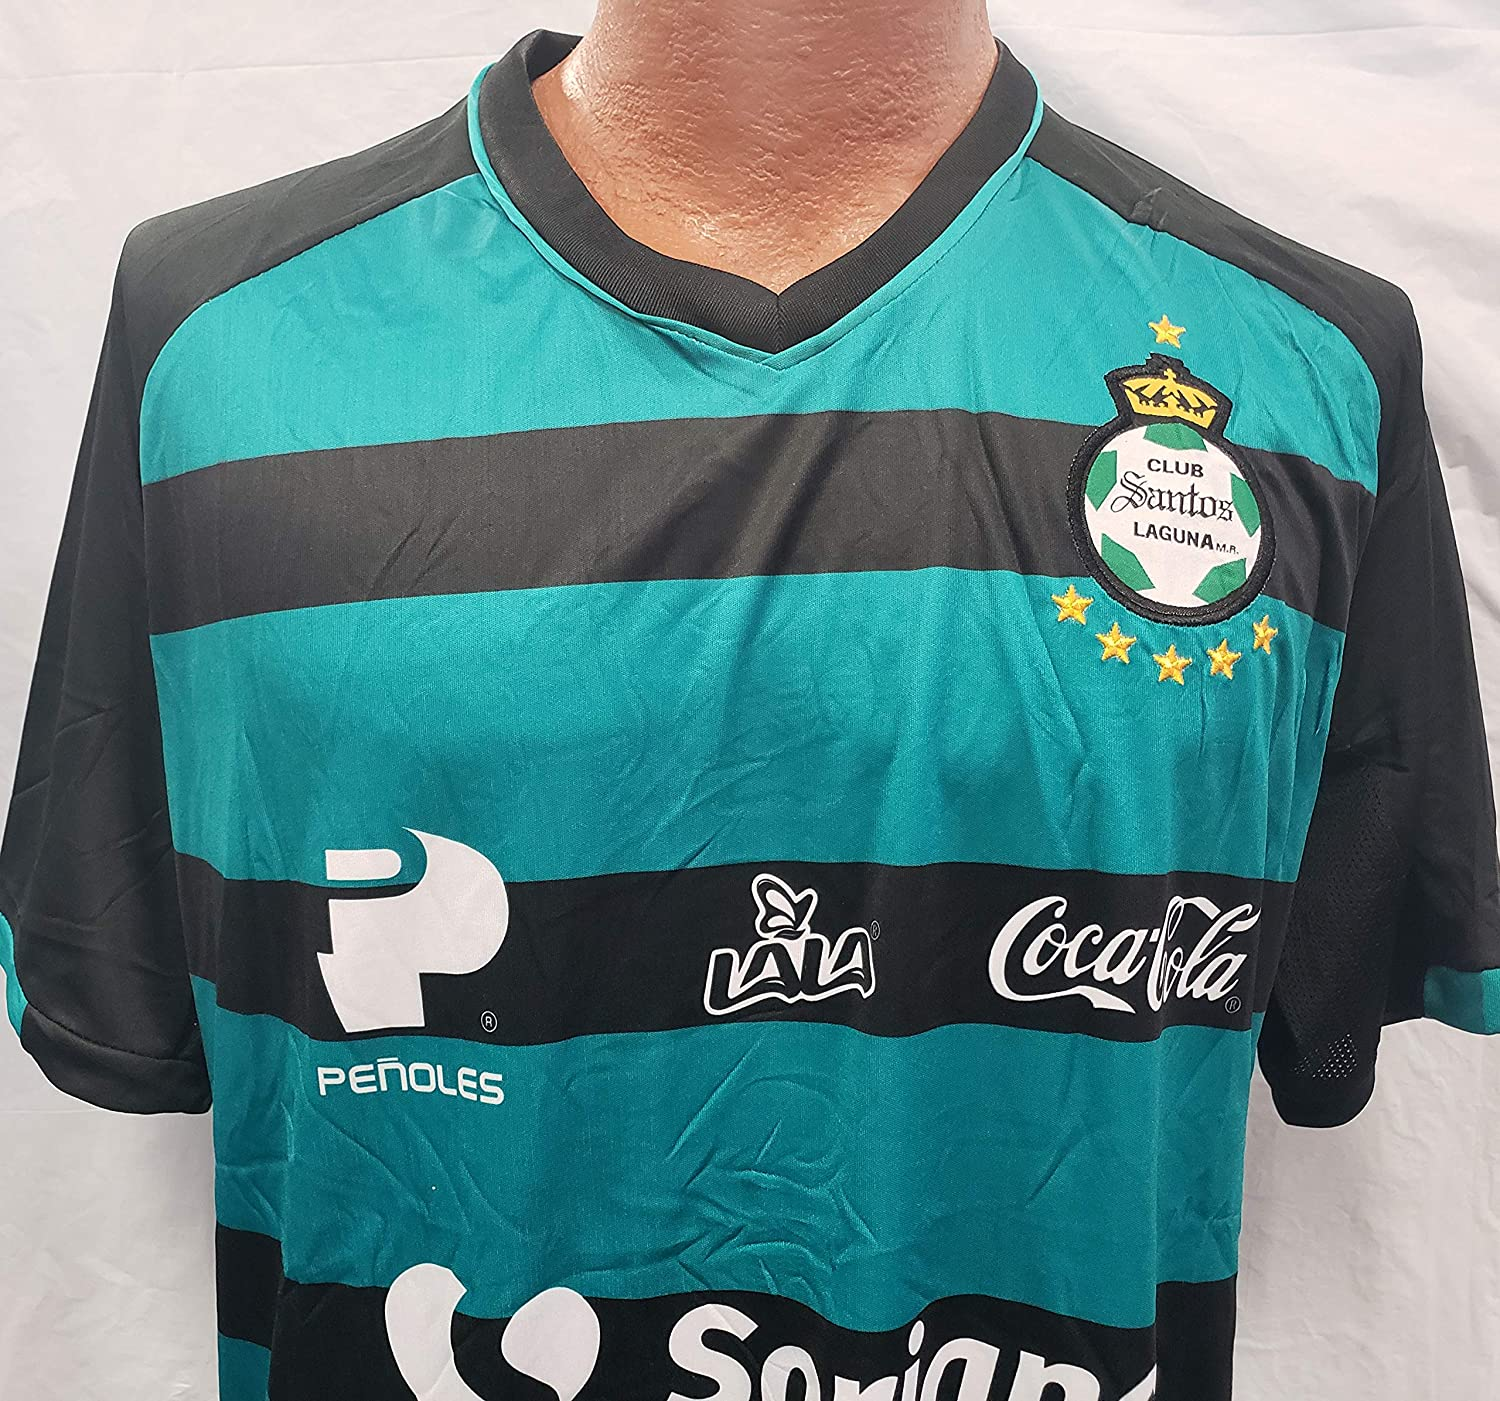 e51036cf0 Amazon.com   New! Santos Laguna Generic Replica Jersey Adult Size Large    Sports   Outdoors